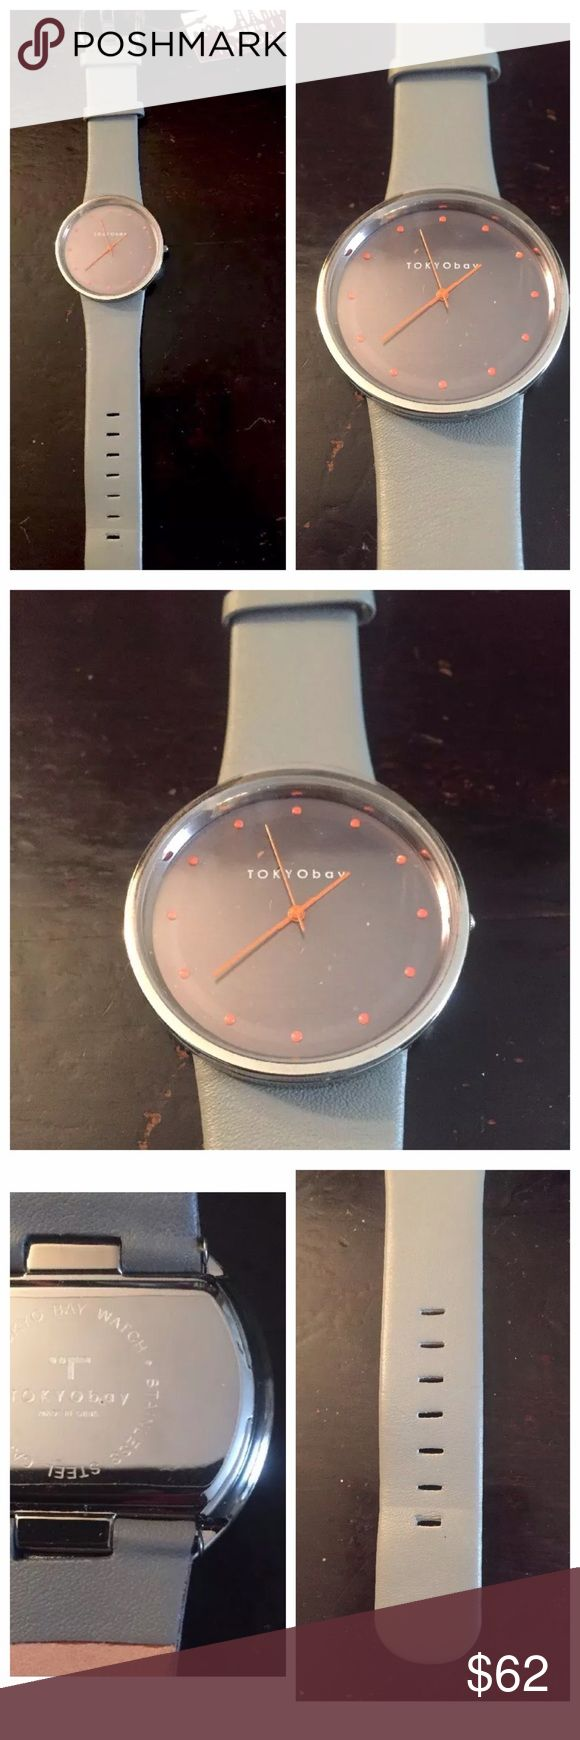 Tokyo Bay Watch, NWT, Quartz (Battery), $146 Tokyo Bay Men's Wristwatch   Gray with black face and stainless steel back NWT  Great condition Needs new battery Tokyo Bay Accessories Watches